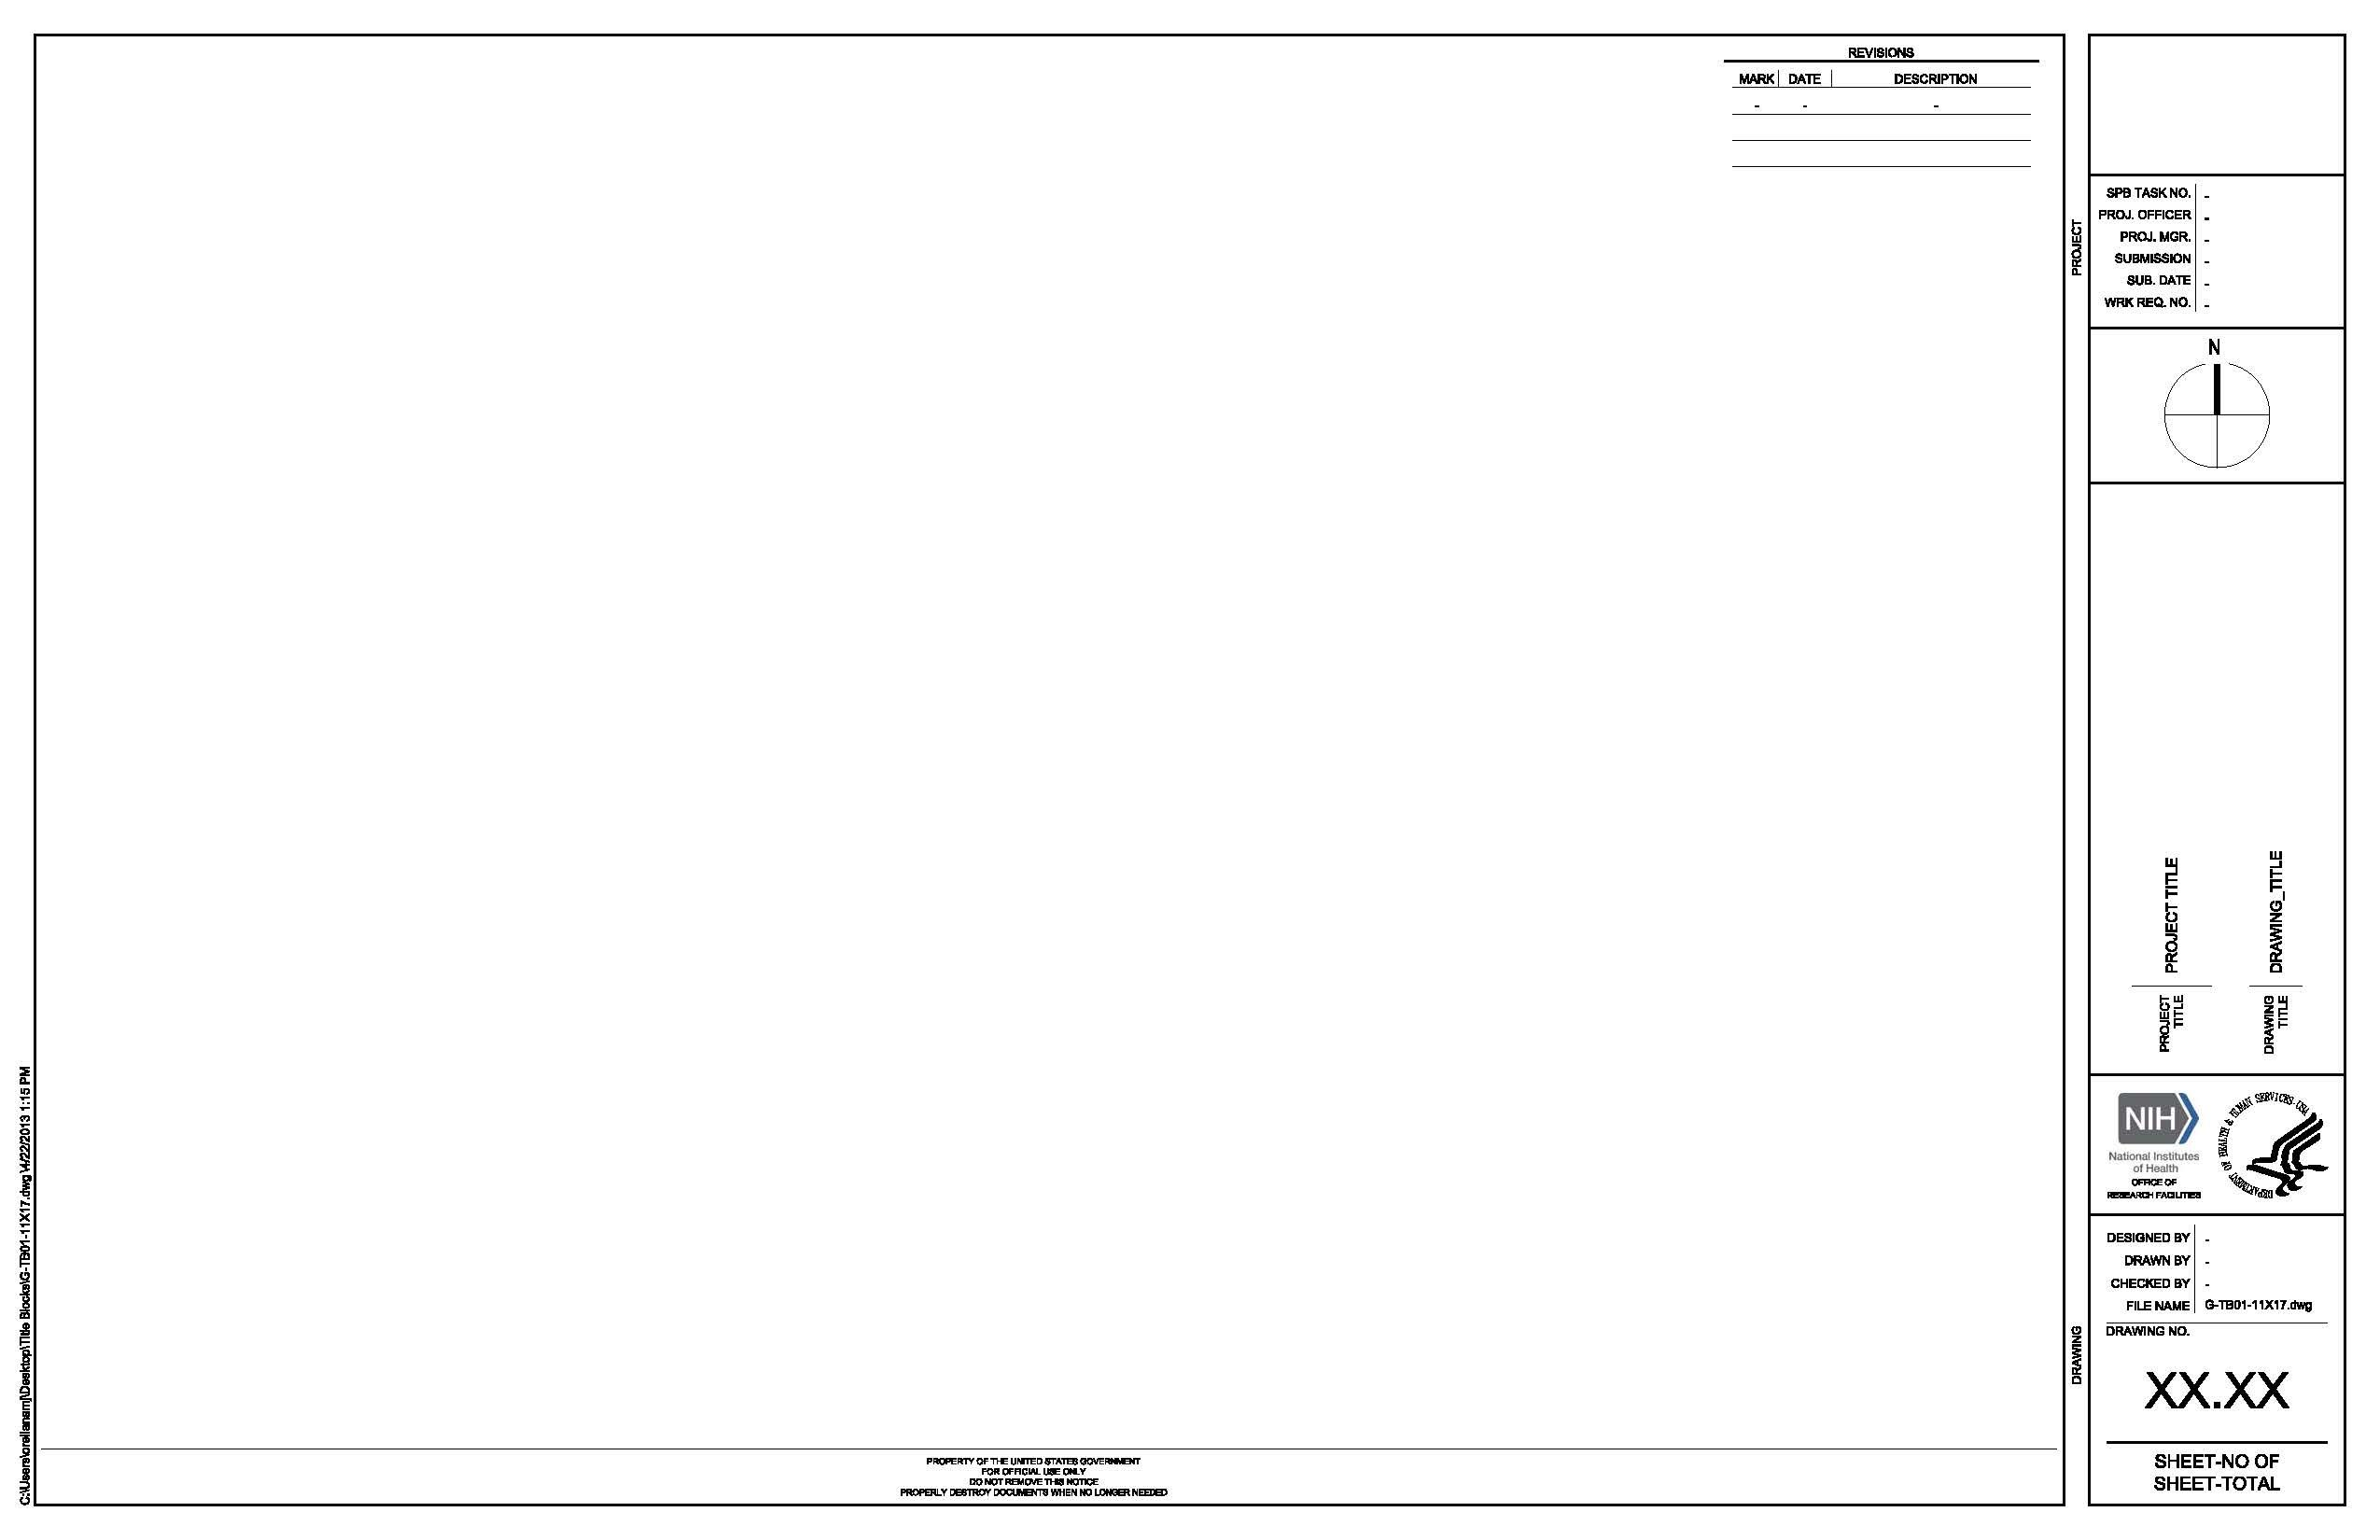 Title block template autocad where to find title block templates g tb01 11x17 dtr title block jpg 2550 1650 design inspiration pronofoot35fo Images